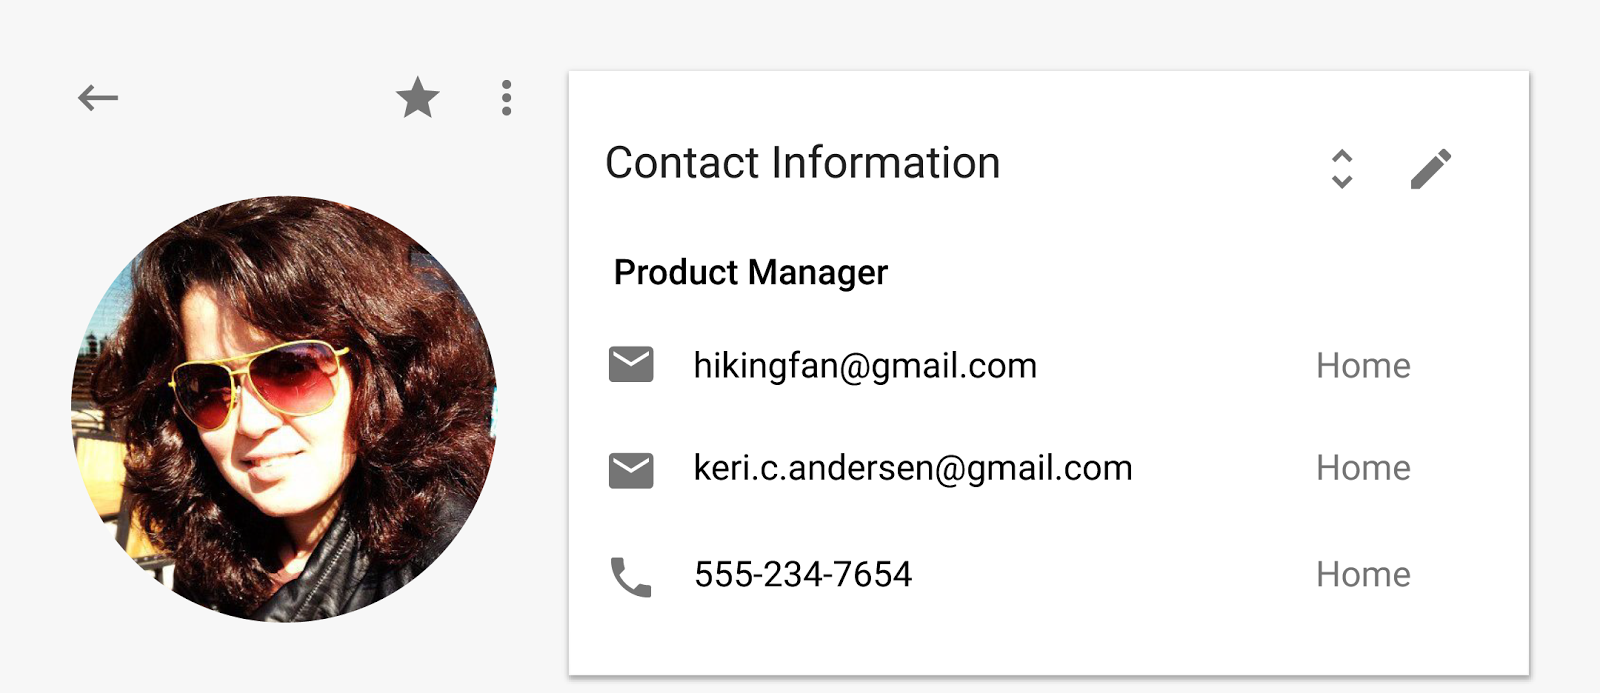 Google Revamps Contacts With New Design, Features